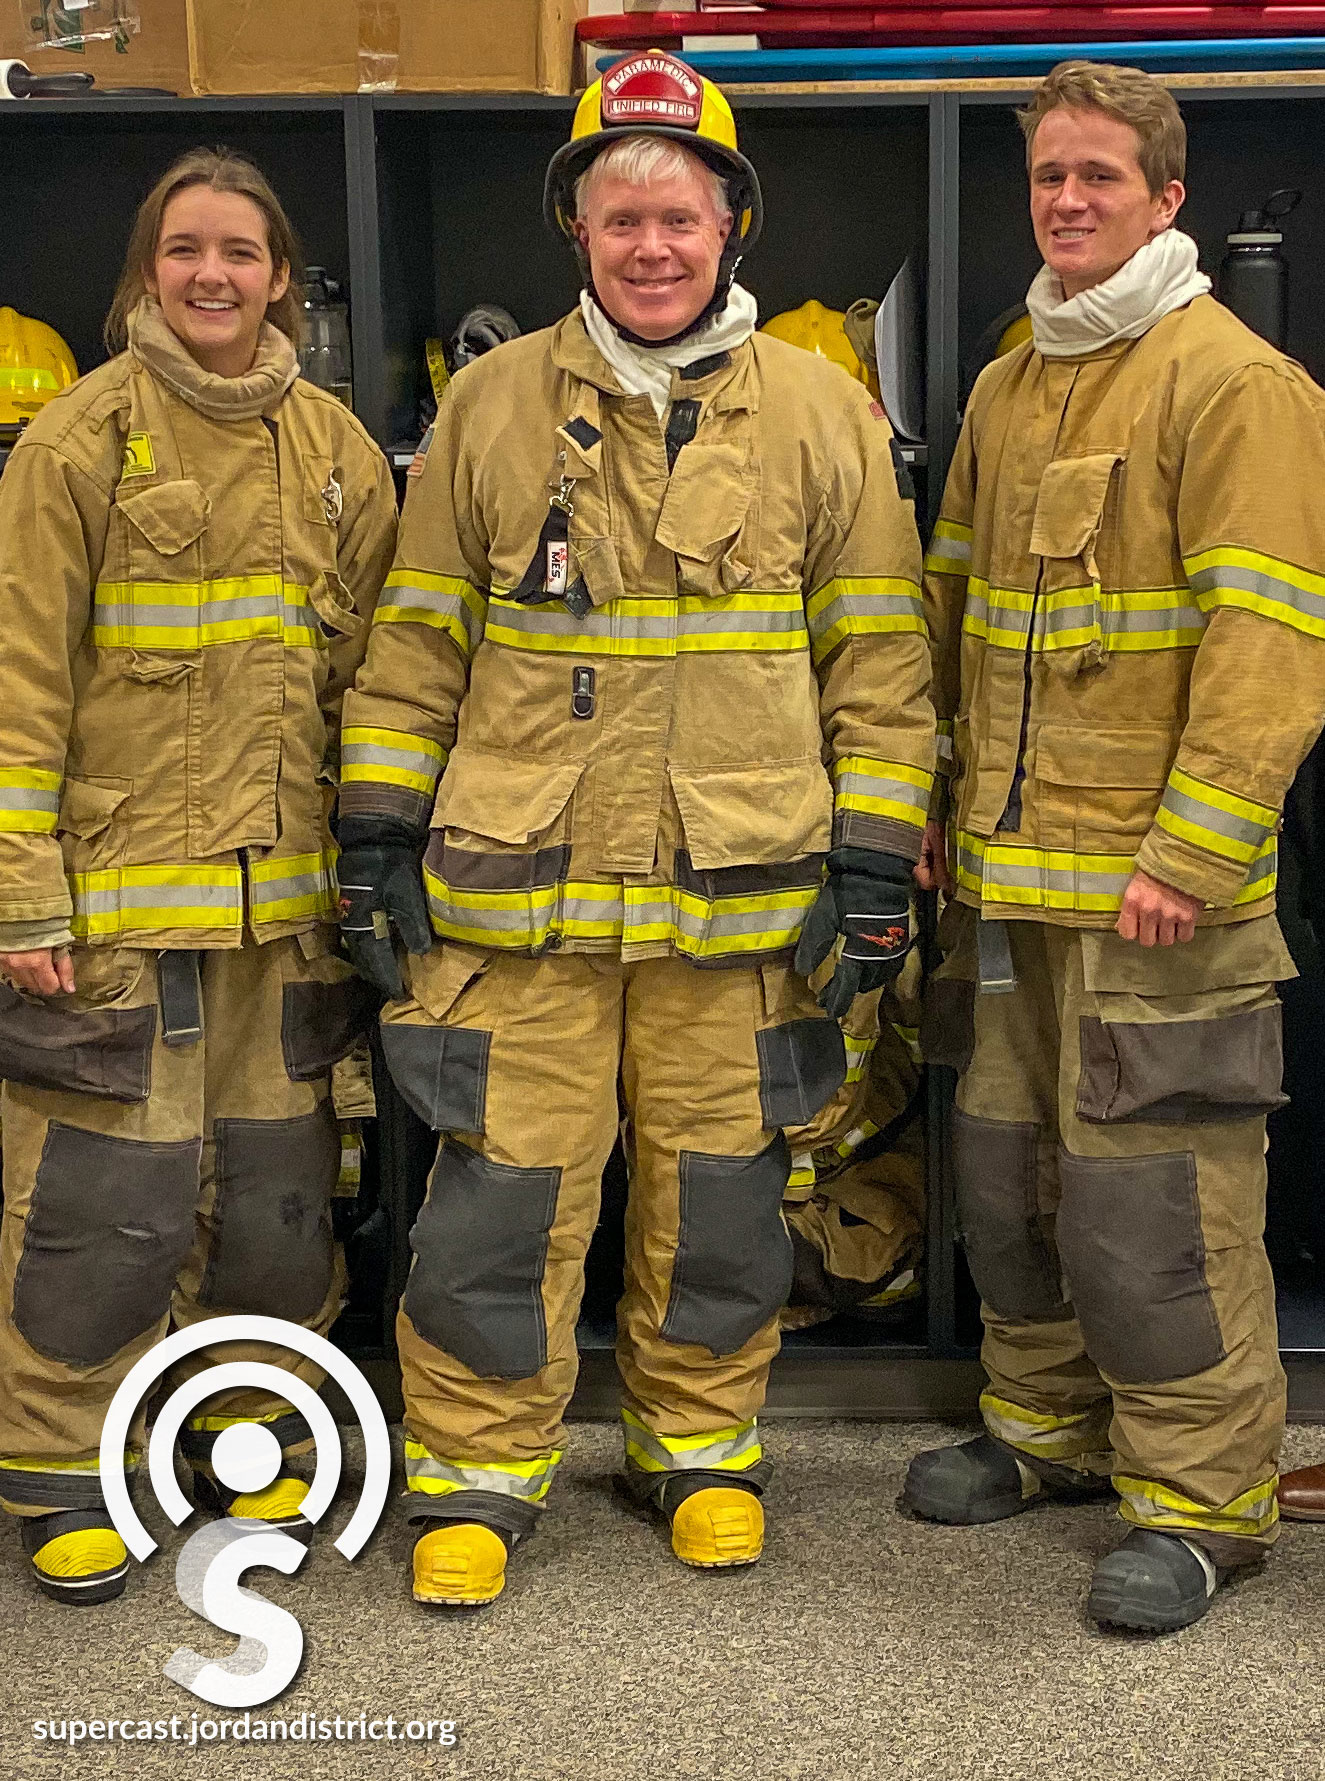 Superintendent Godfrey with two JATC Firefighter students